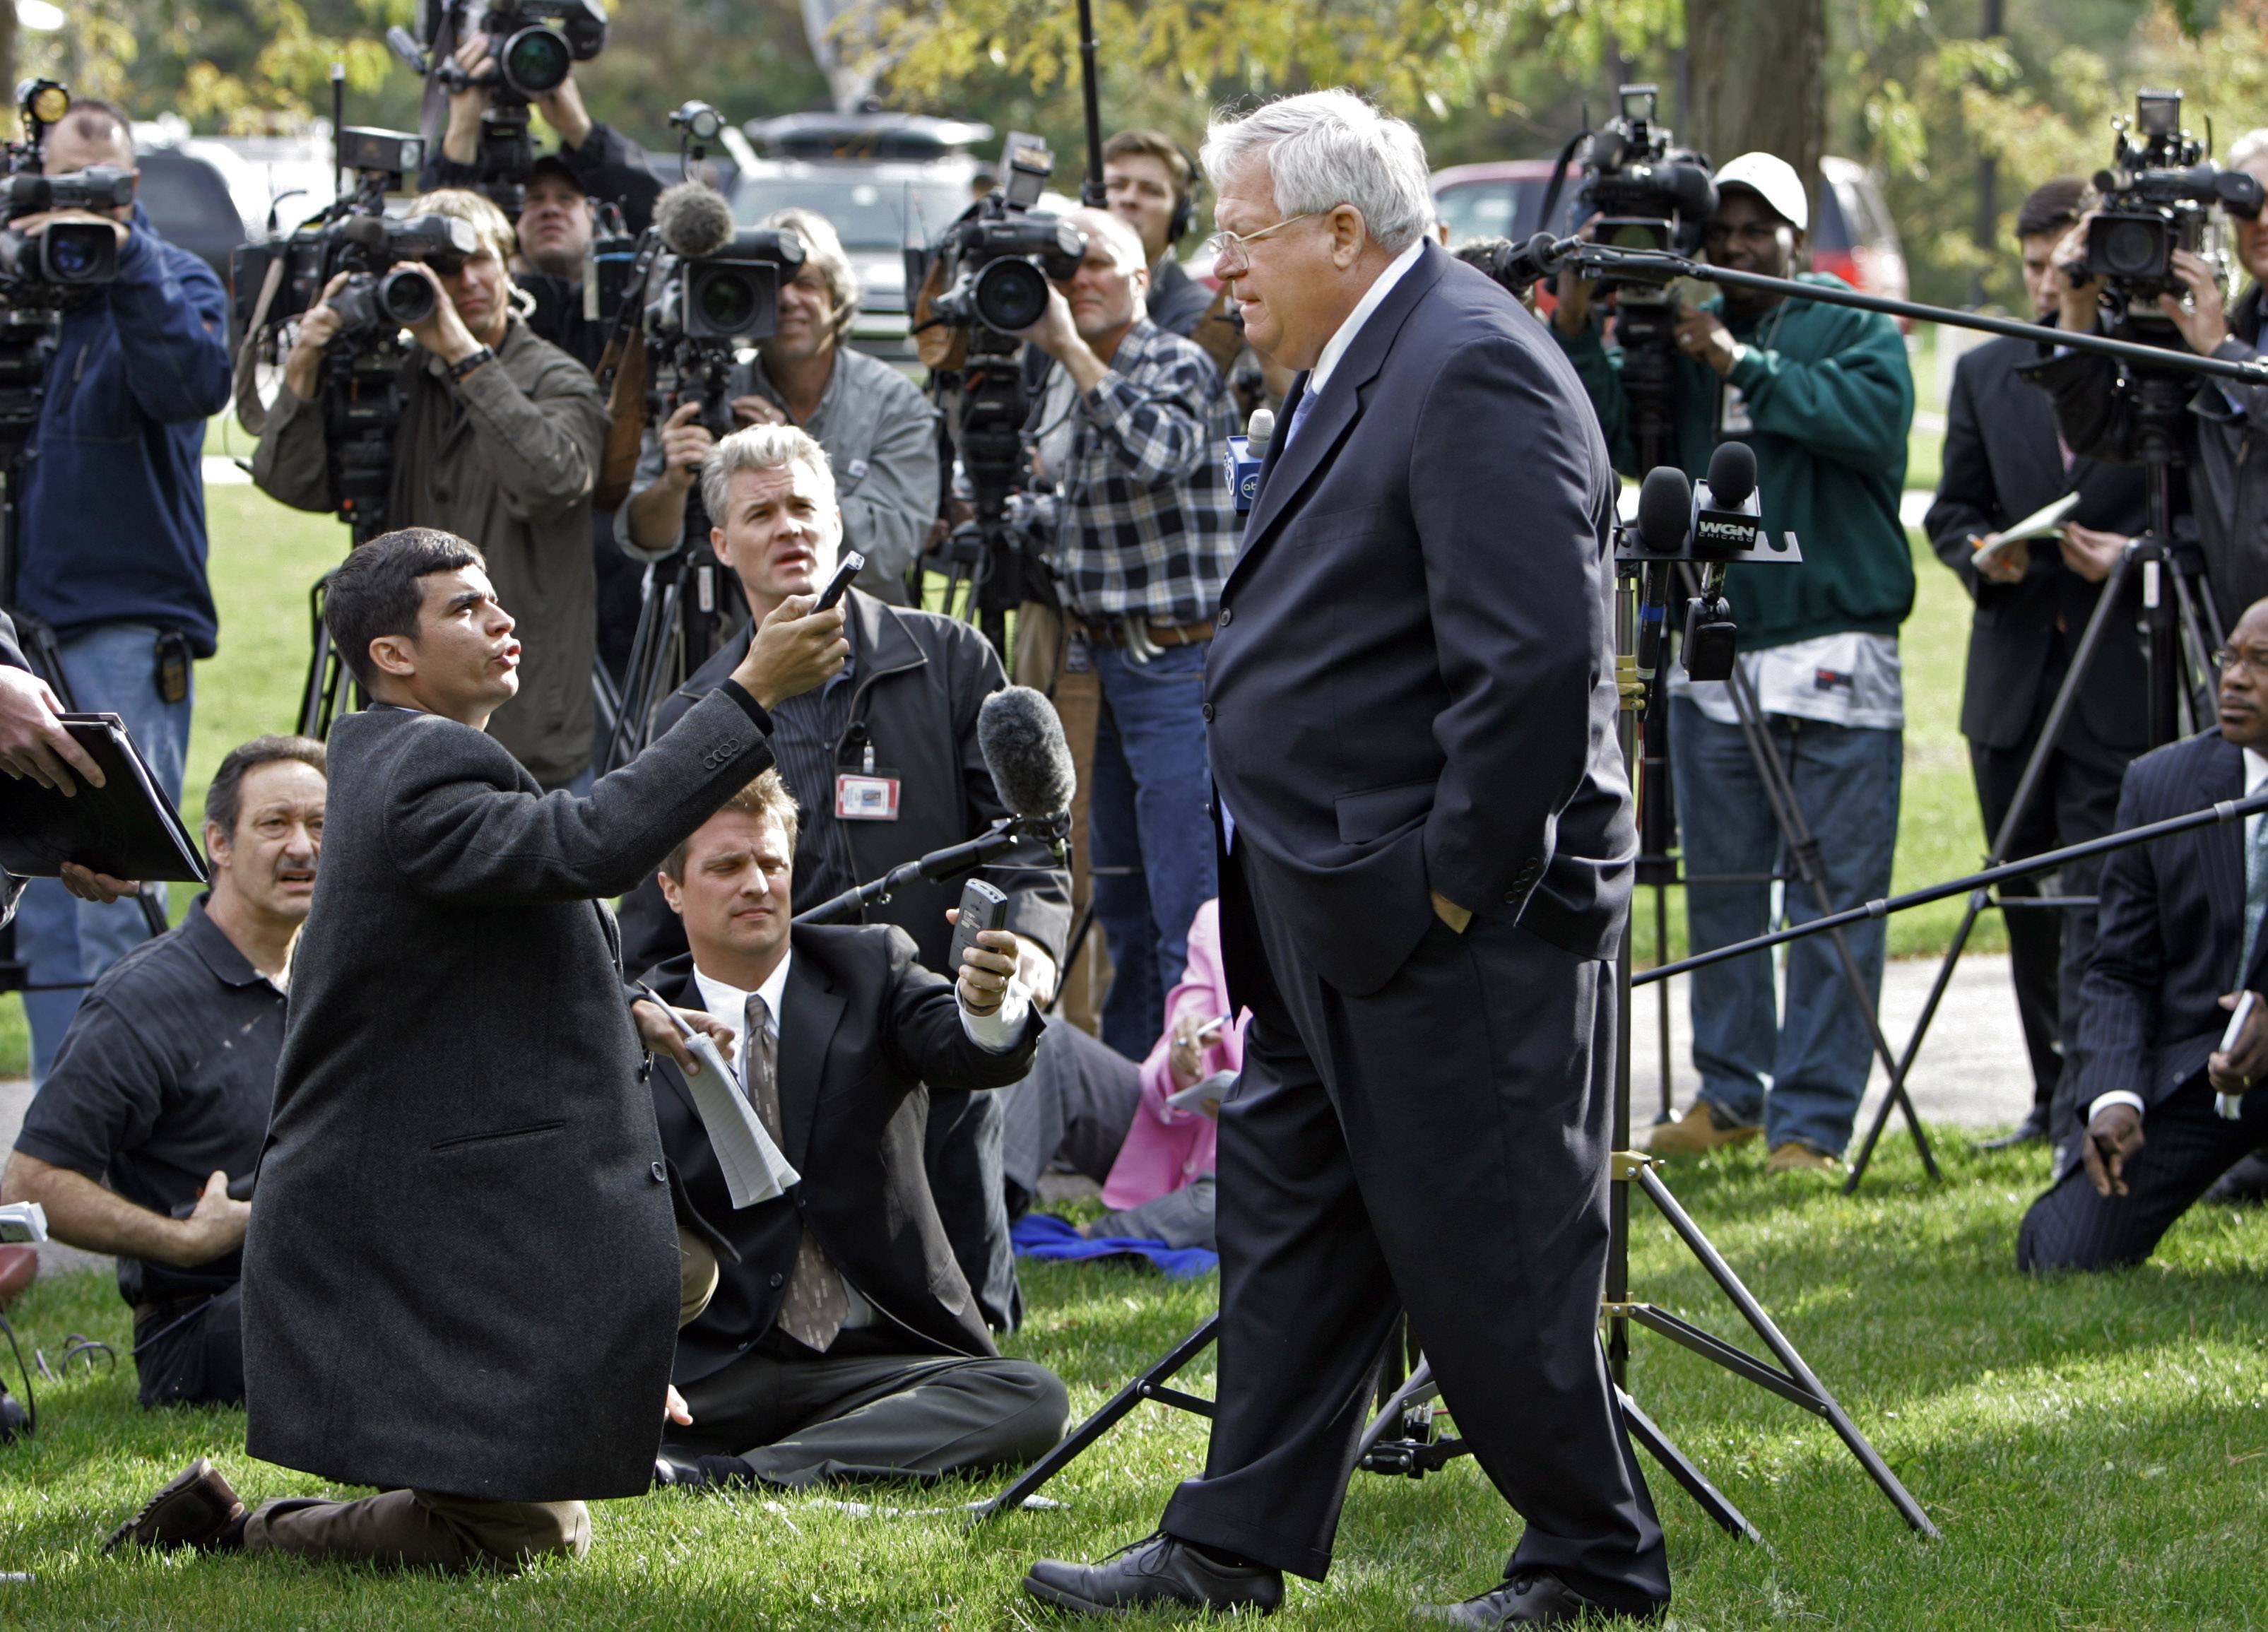 Hastert kept his secrets while decrying molesters